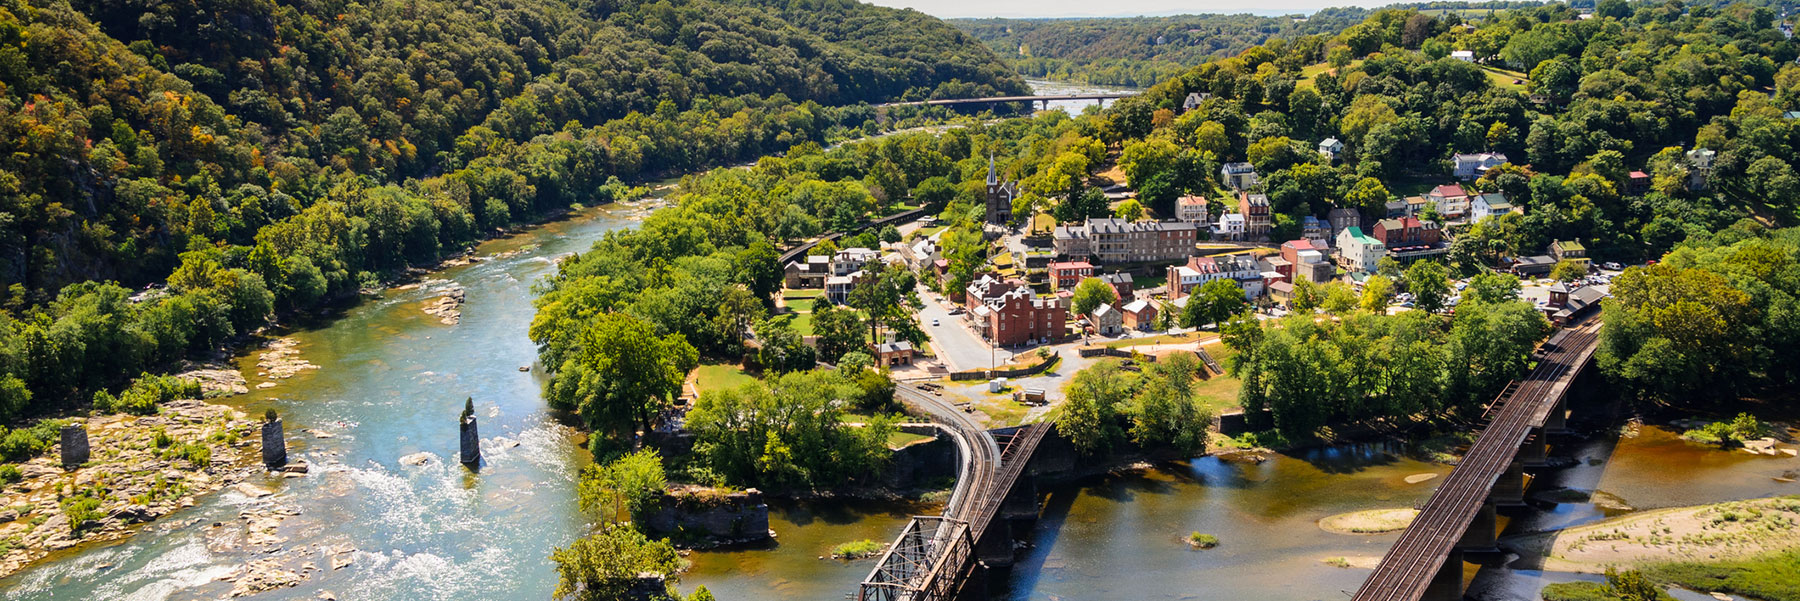 Things To Do In Harpers Ferry Quality Inn Harpers Ferry